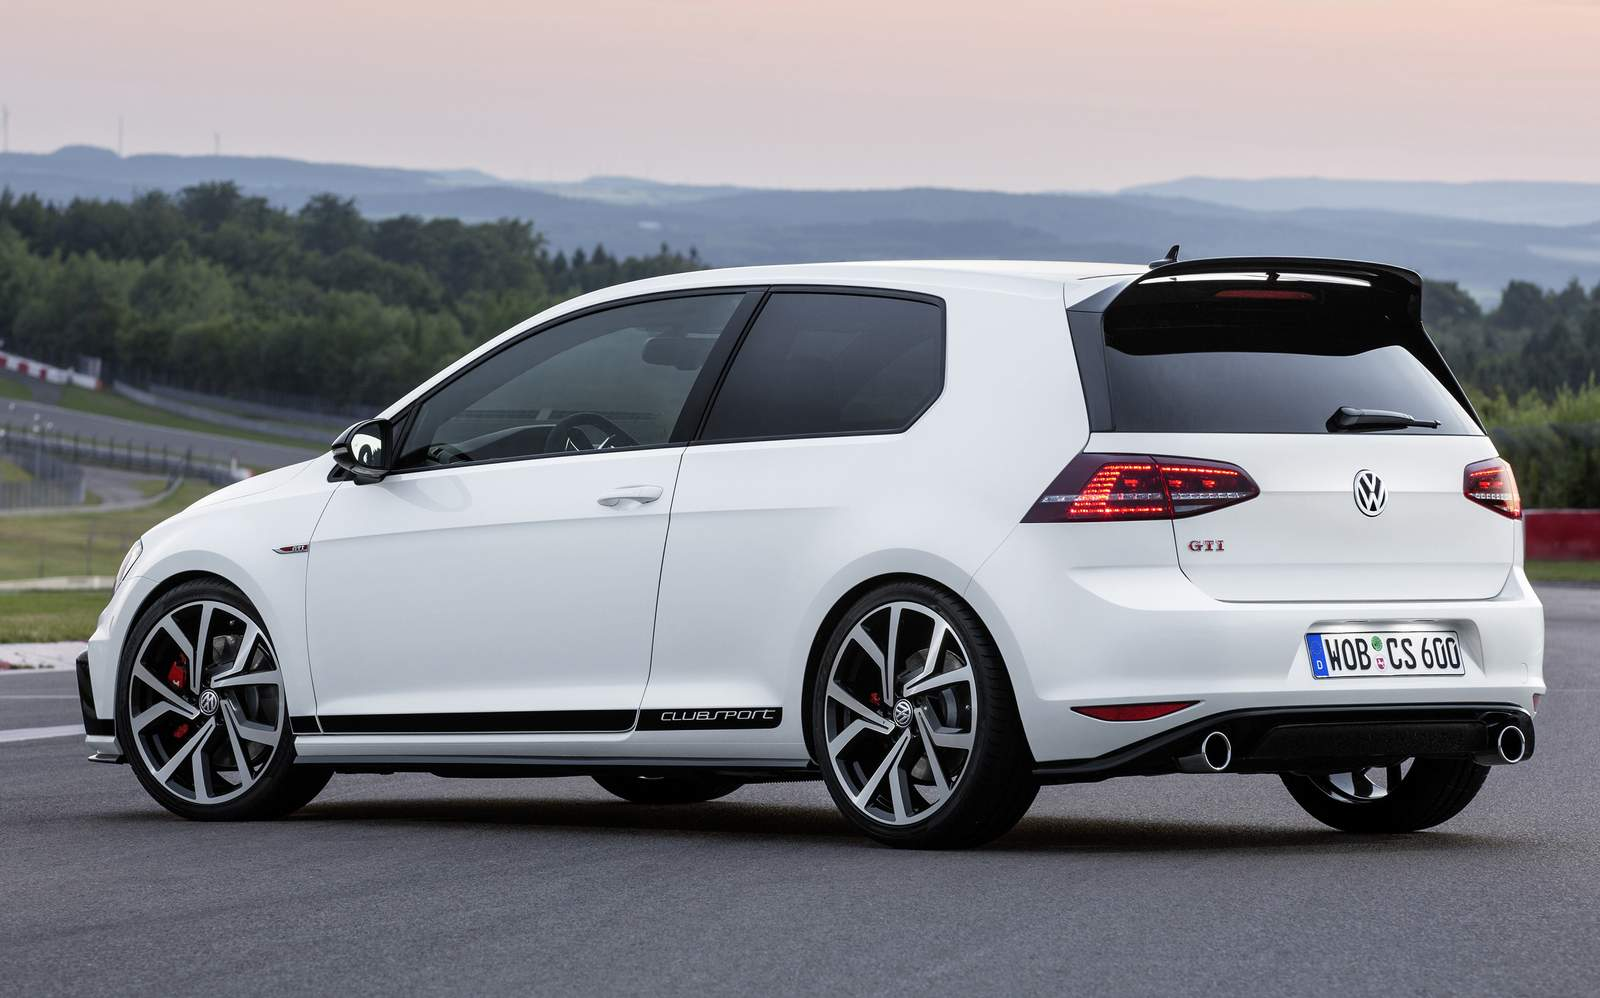 golf gti 2016 clubsport s rie comemora 40 anos do cone car blog br. Black Bedroom Furniture Sets. Home Design Ideas